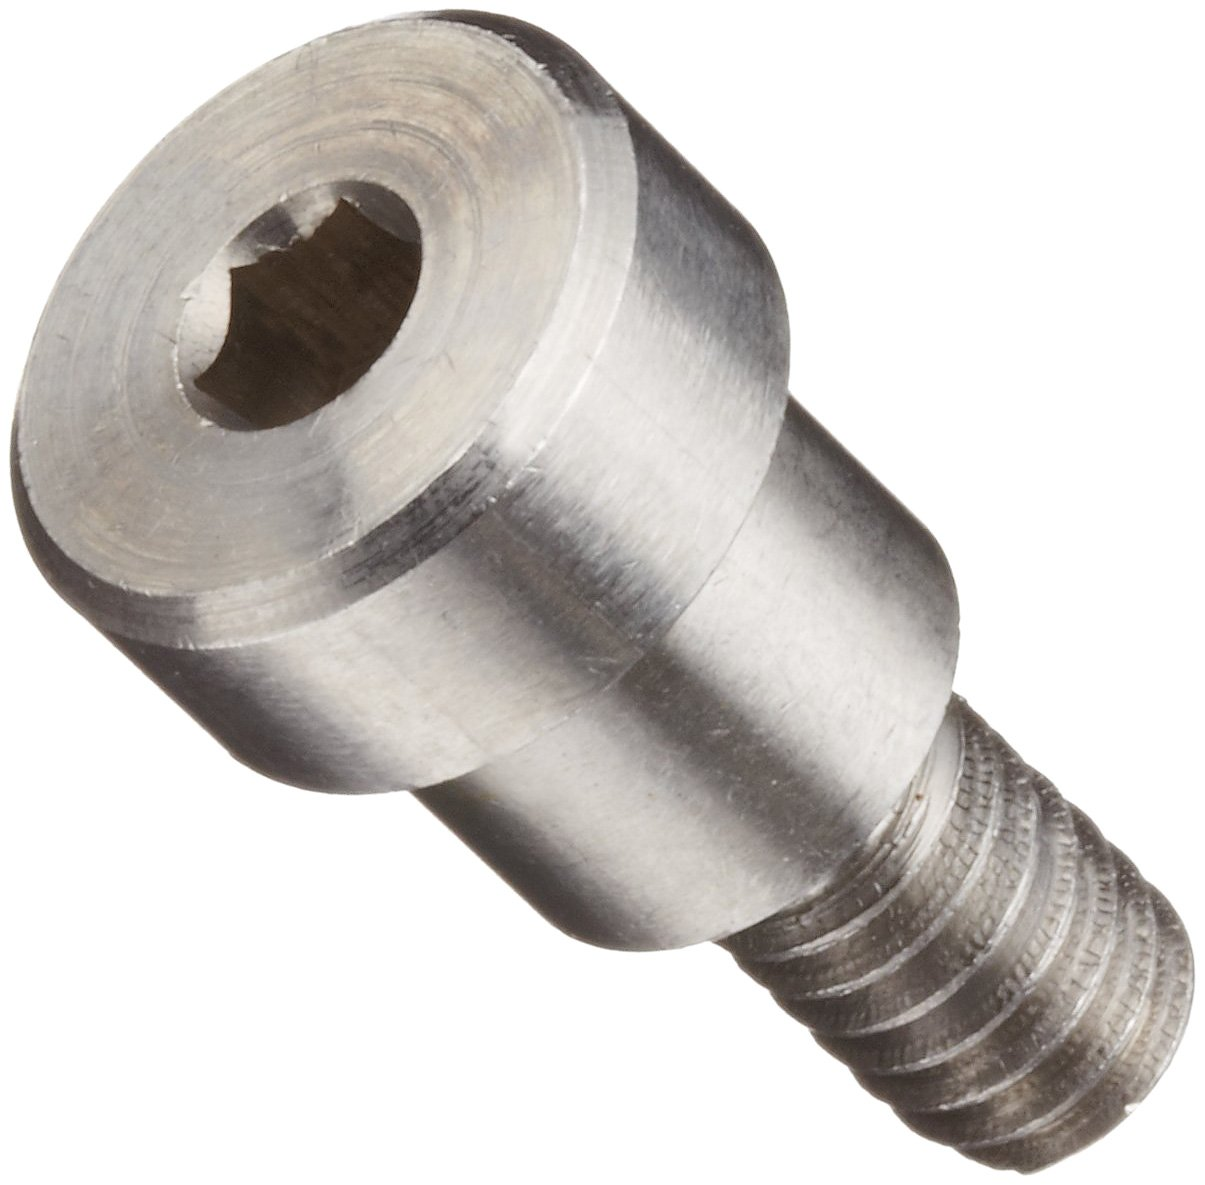 #8-32 UNC Threads Pack of 5 1 Shoulder Length 3//16 Shoulder Diameter Hex Socket Drive Tolerance Plain Finish 303 Stainless Steel Shoulder Screw